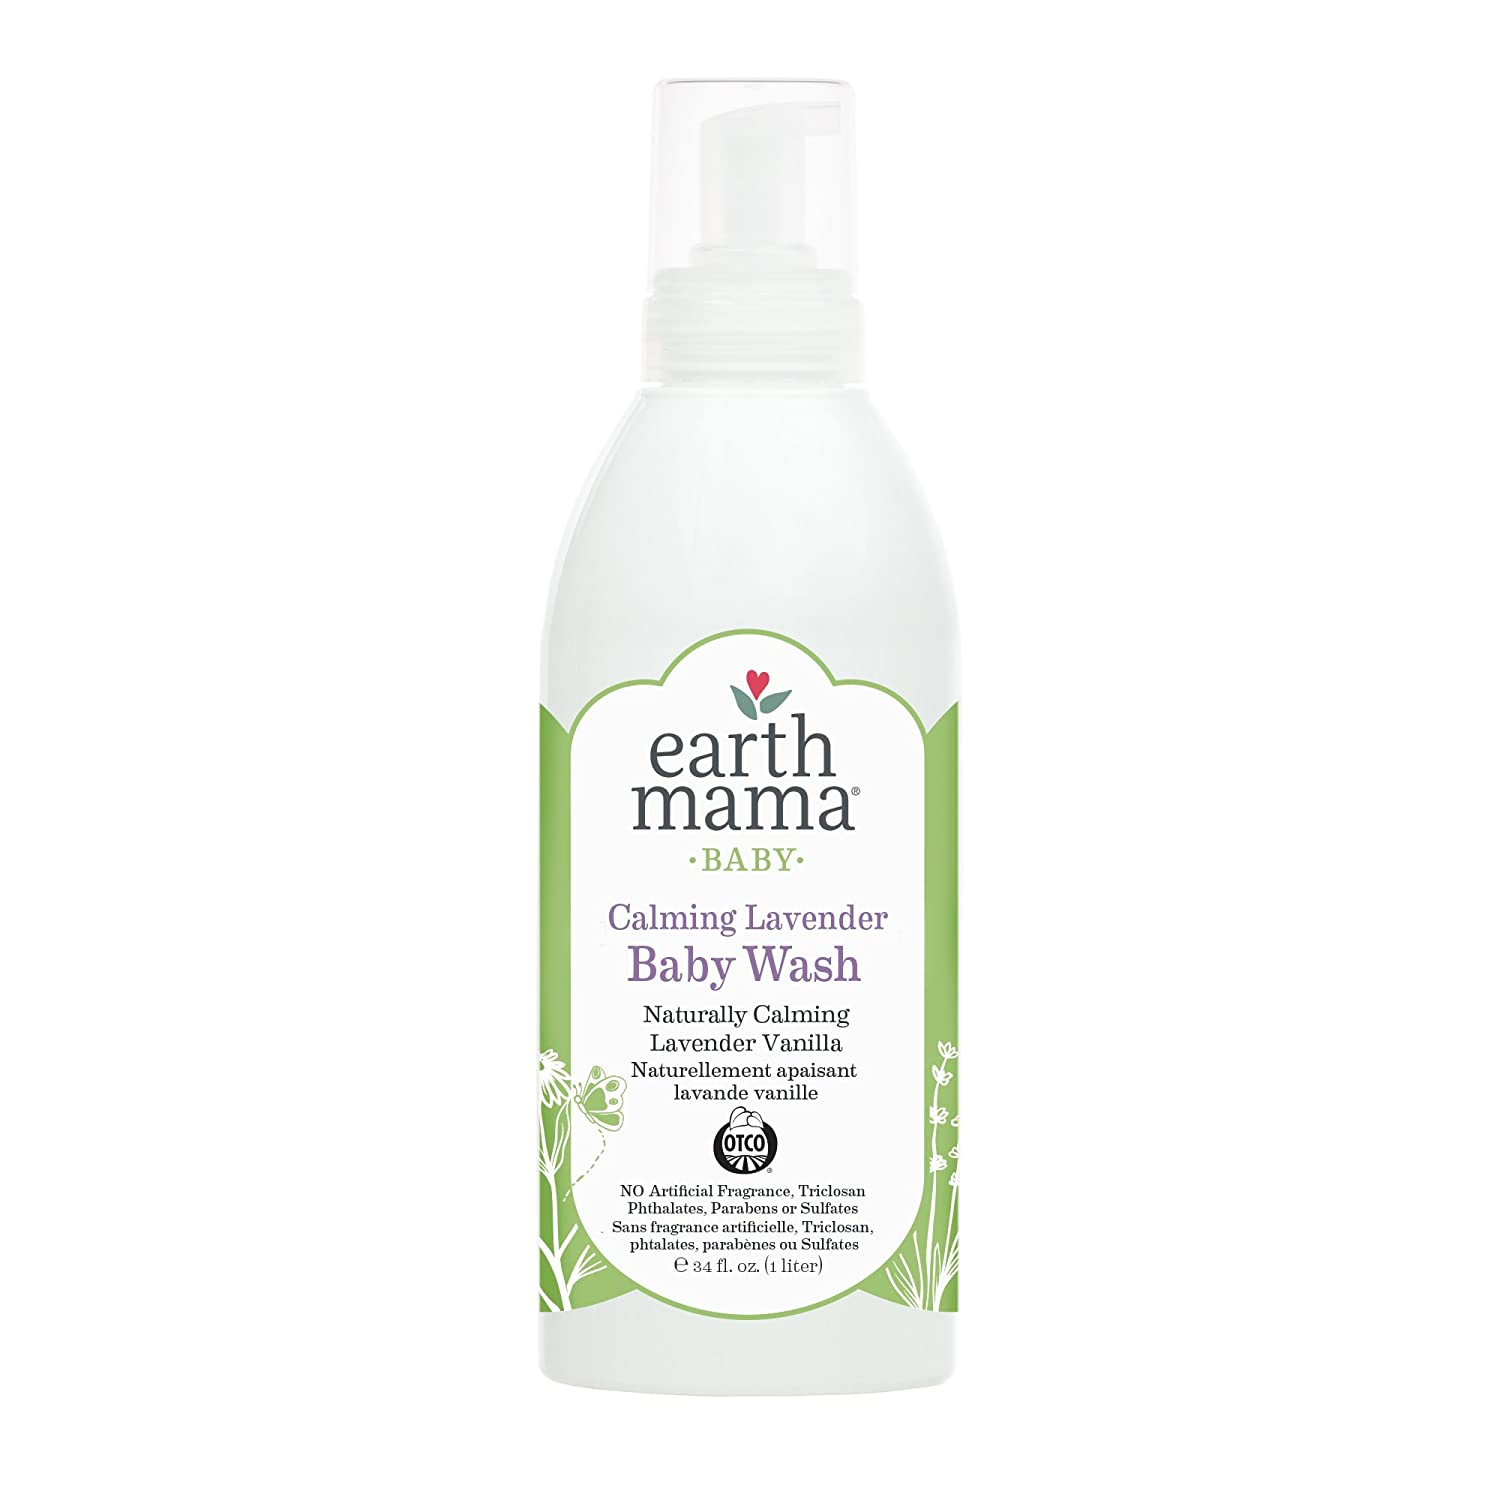 Earth Mama Angel Baby Organic Shampoo and Body Wash, Calming Lavender, 34-Fluid-Ounce